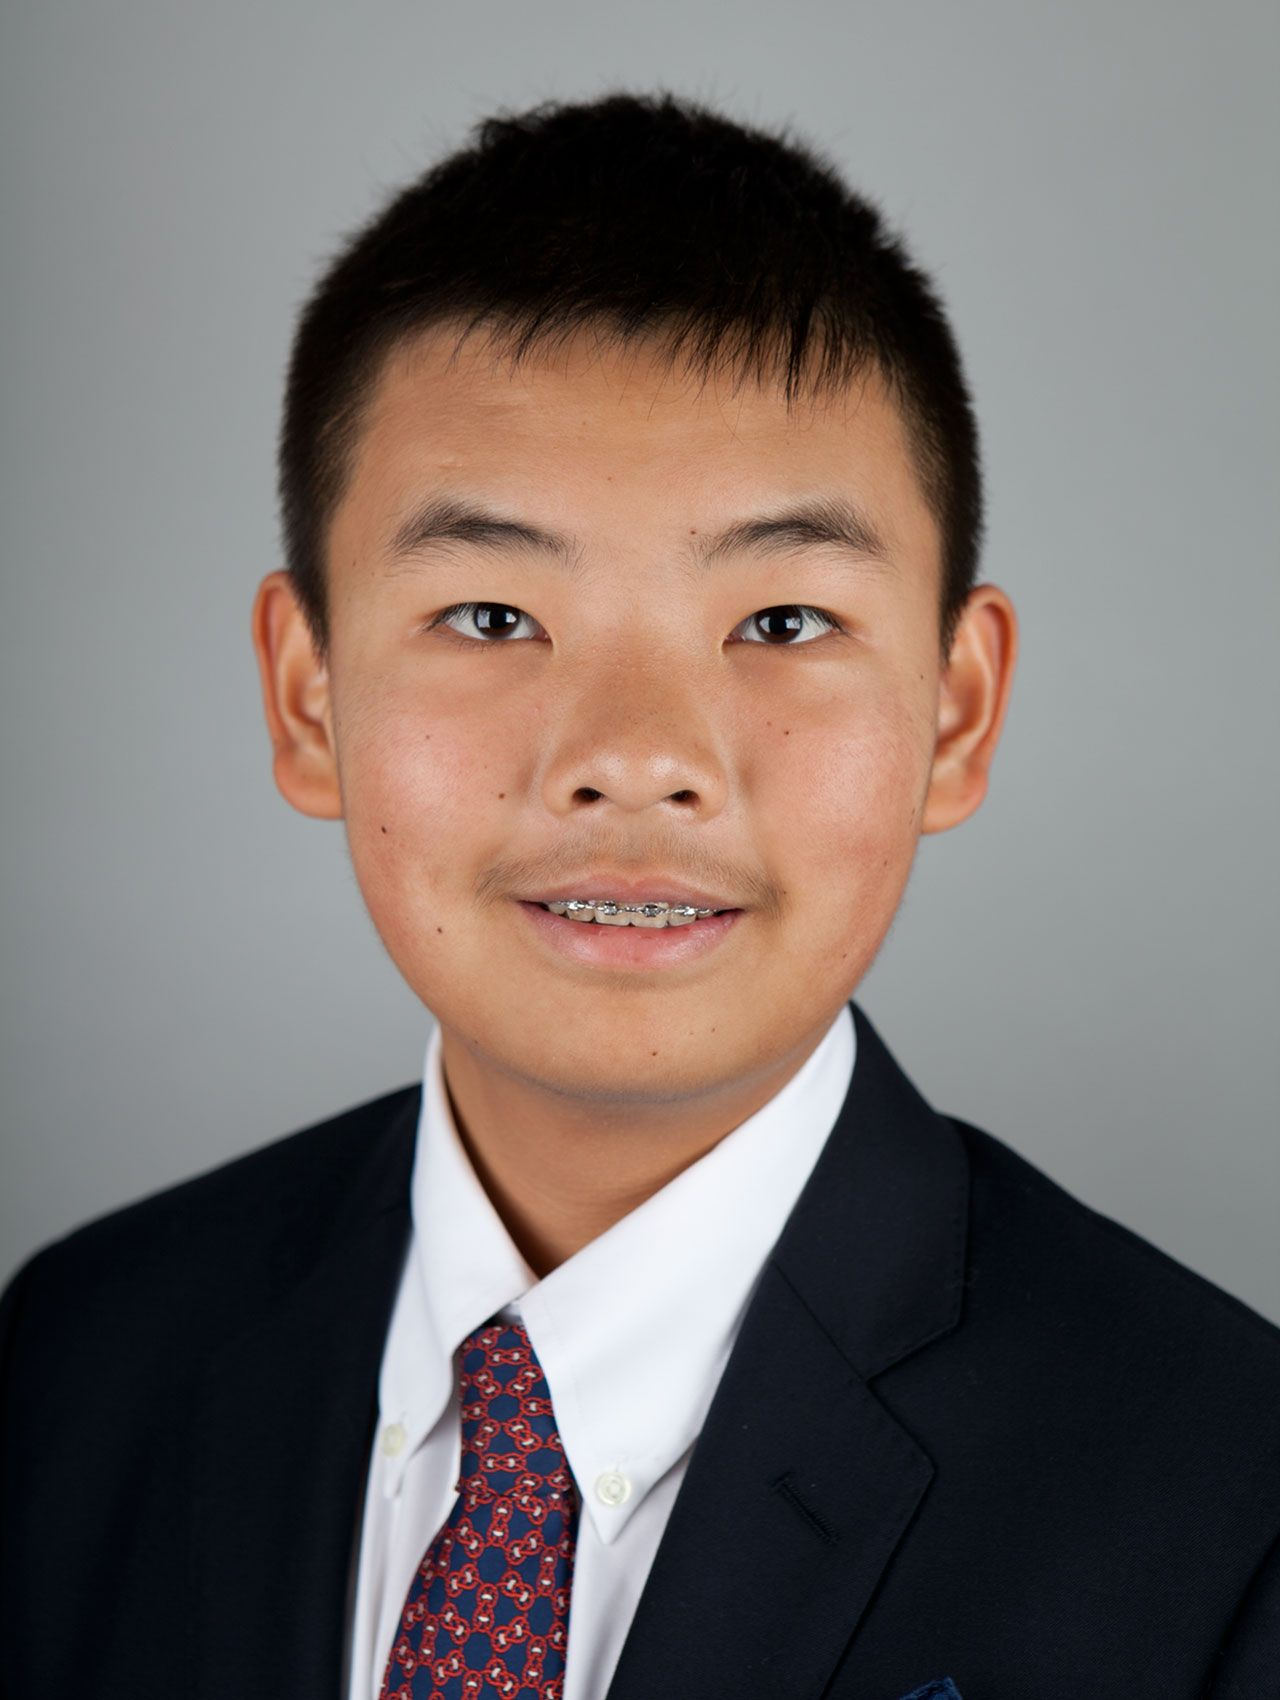 Professional Portrait of Young Asian Boy